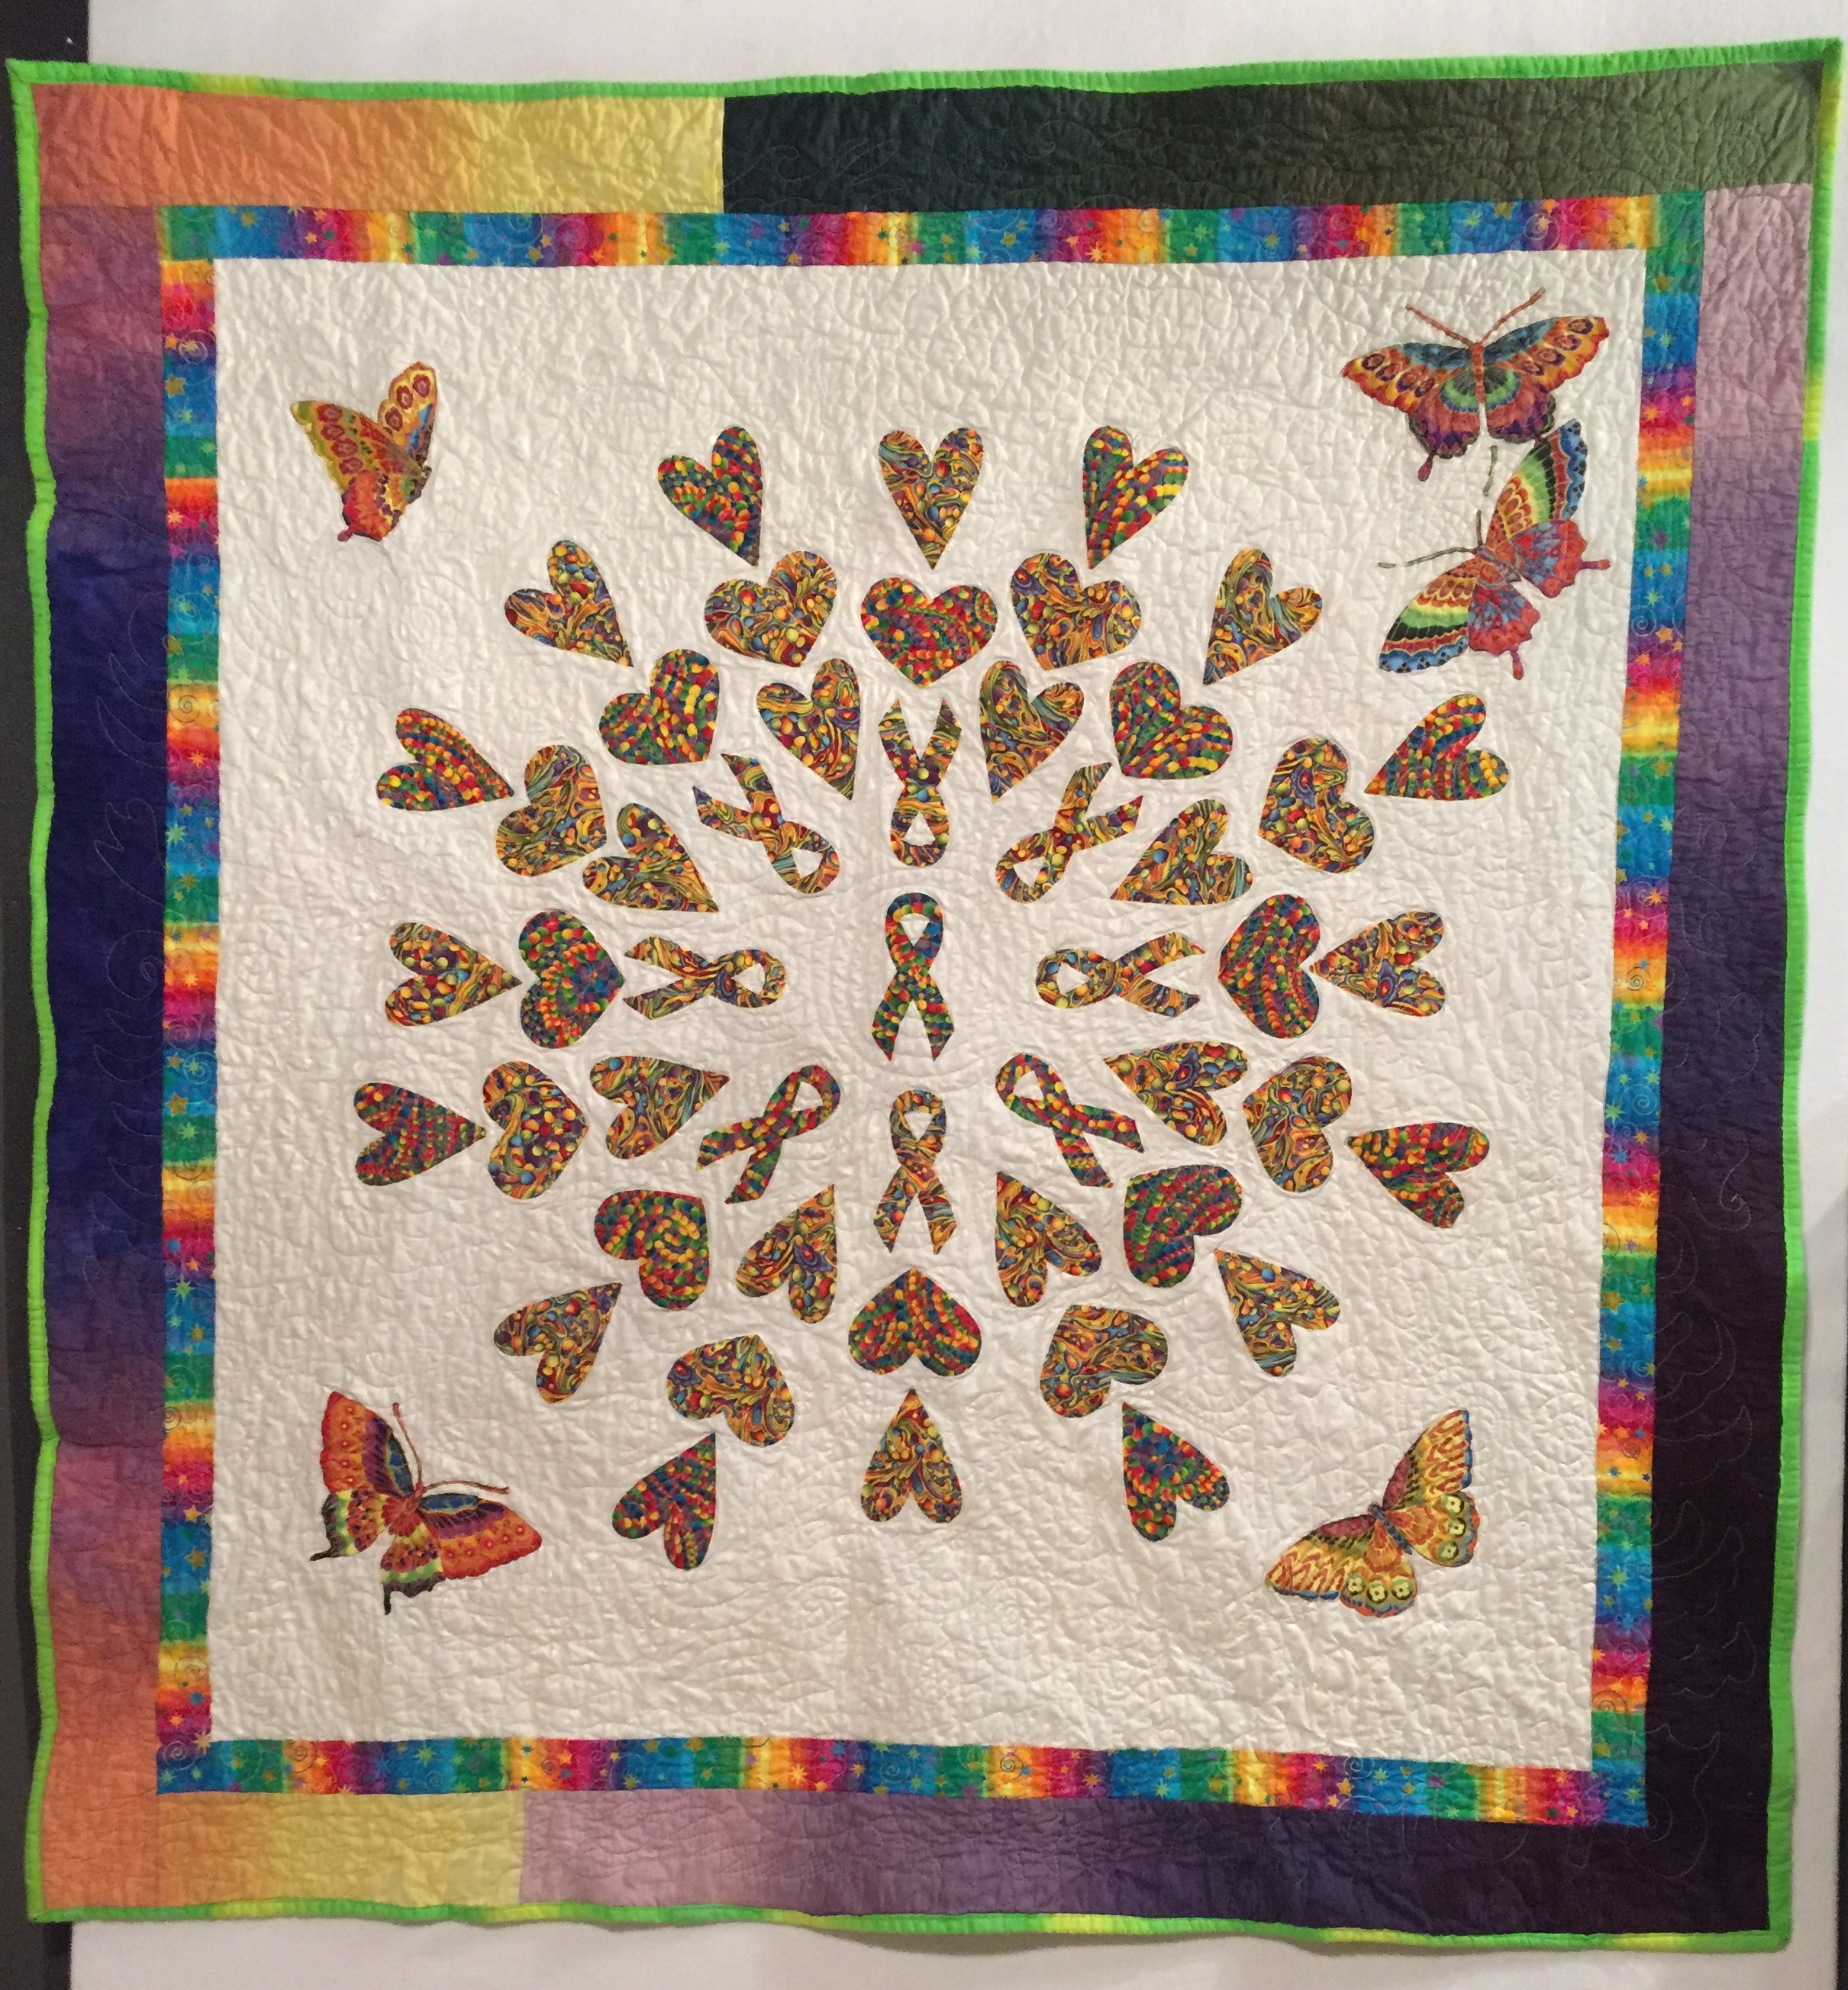 05 Quilted by Patti Auten